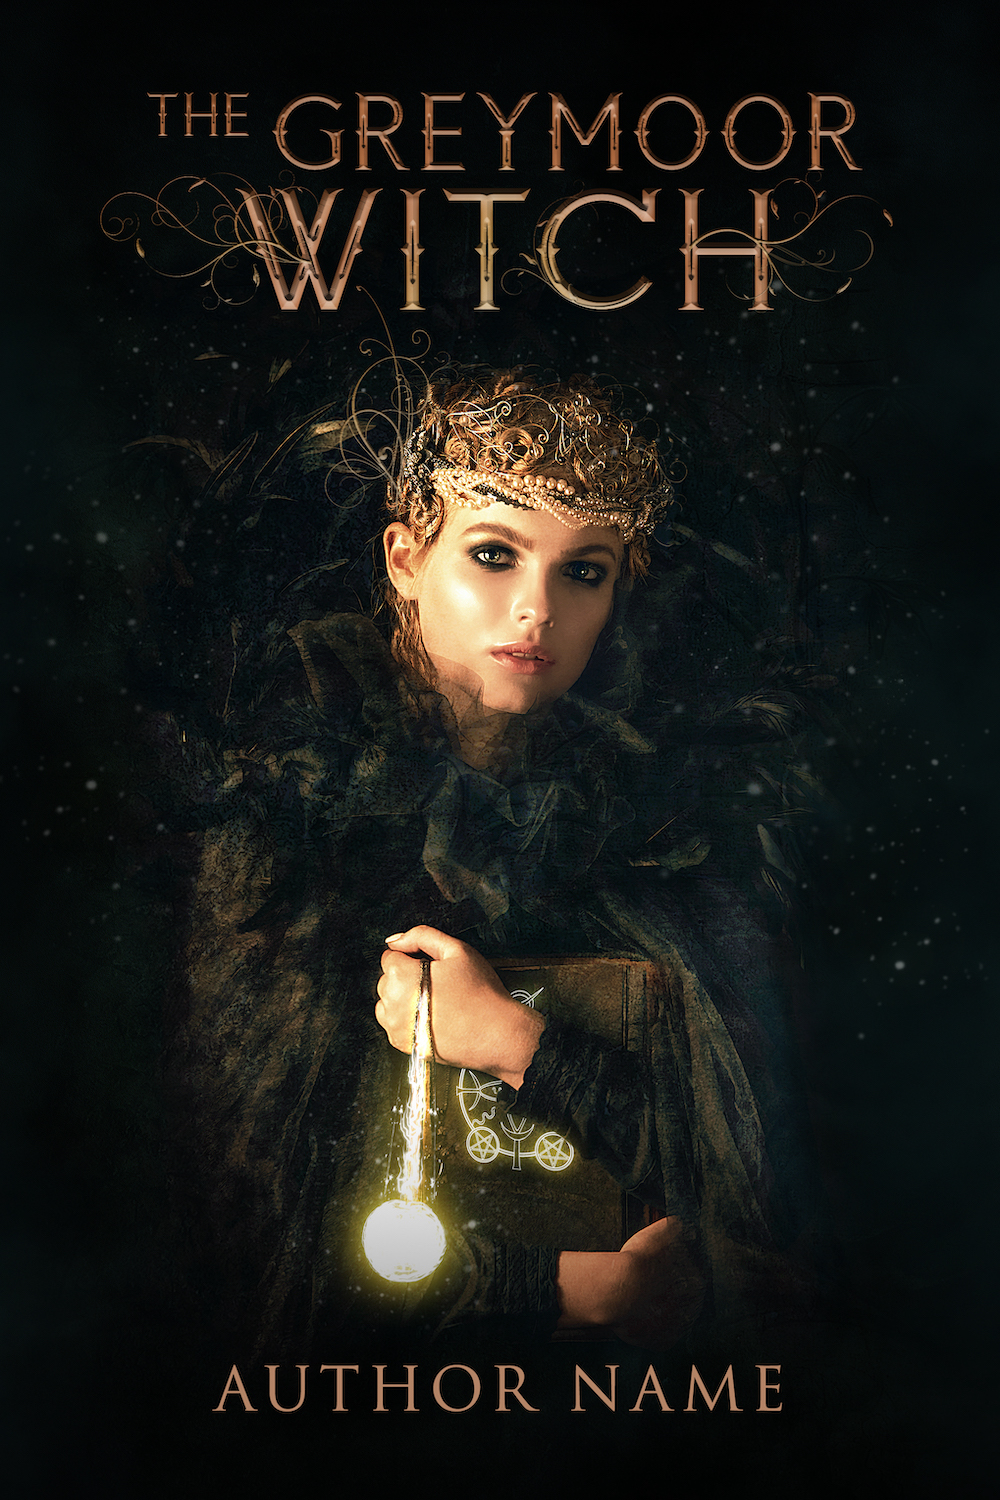 Fantasy Premade Cover - The Greymoor Witch - Site